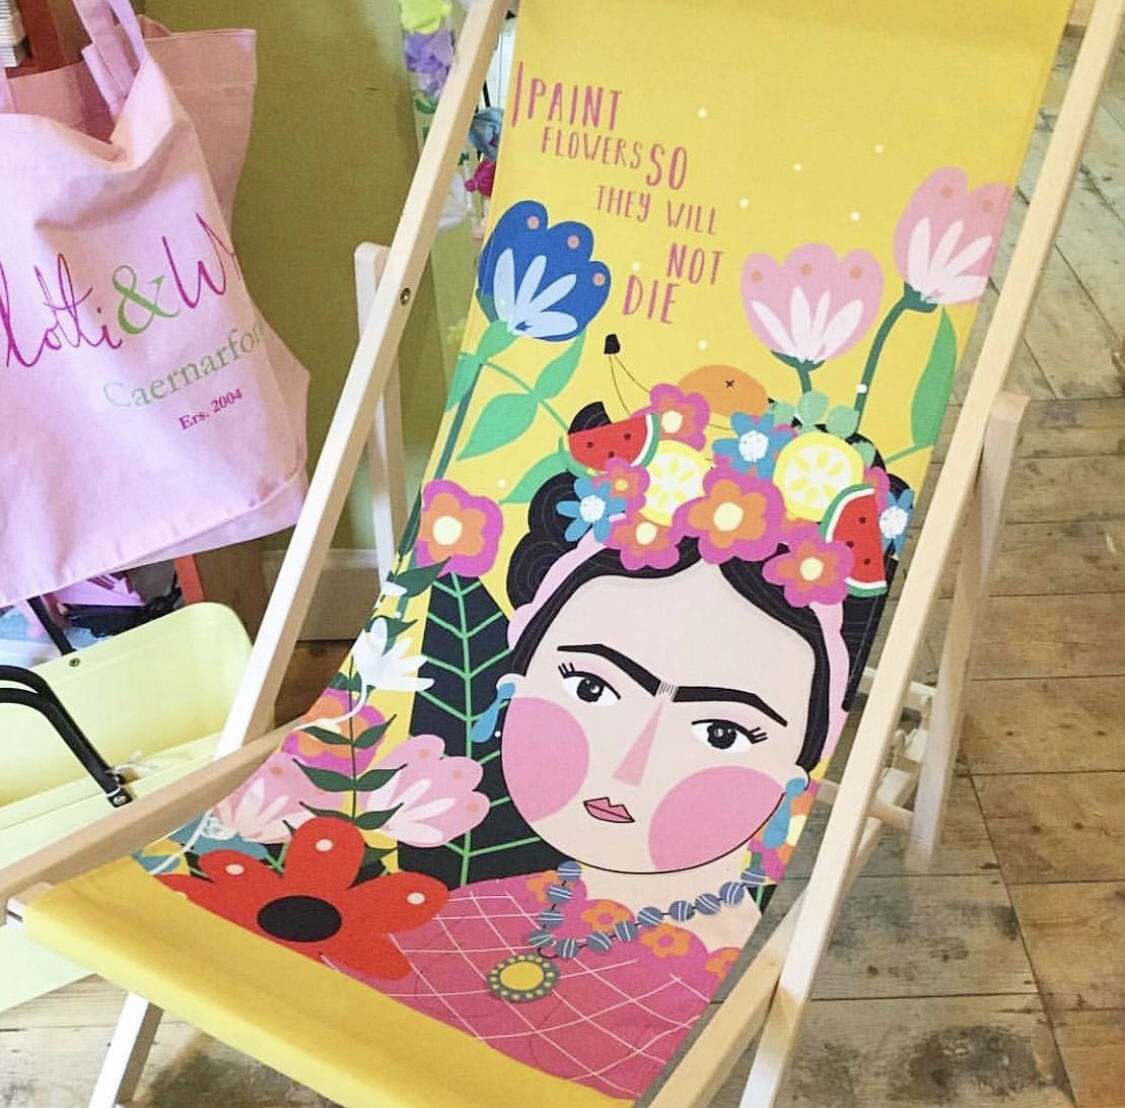 Frida Kahlo gifts - garden deck chairs